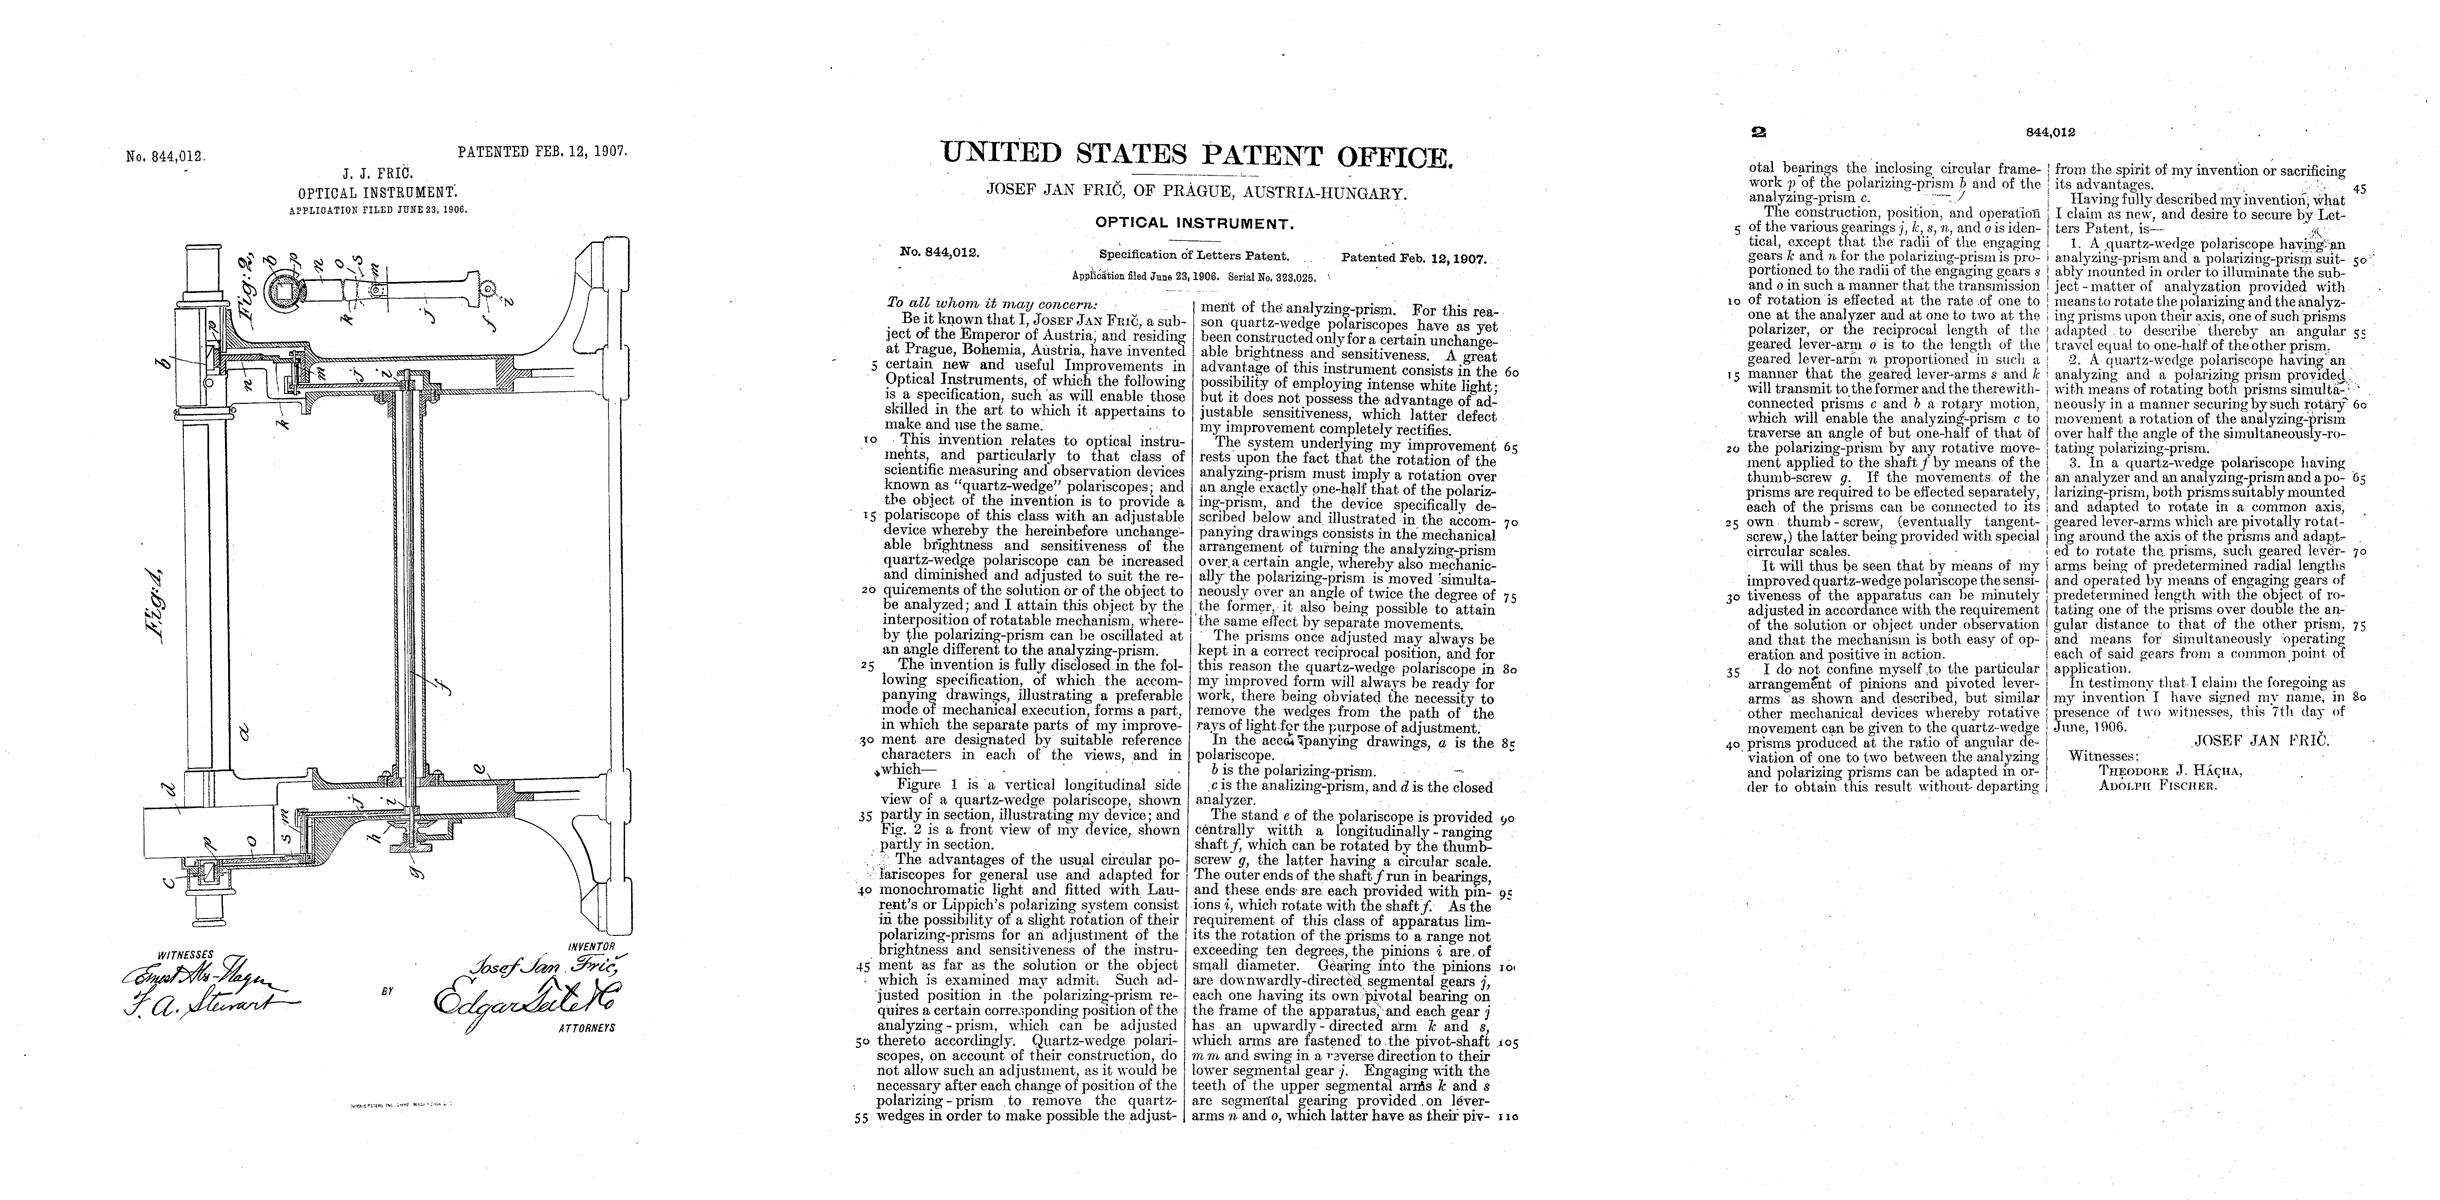 Patent for a type of half shade polariscope used by the U.S. Customs Service. Light passes-through a tube containing sugar solution-into the eye piece, which was rotated to reveal a fully circular clear image. The degree of rotation of the eyepiece corresponds to the level of sucrose, which in turn marks the quality of the sugar product.